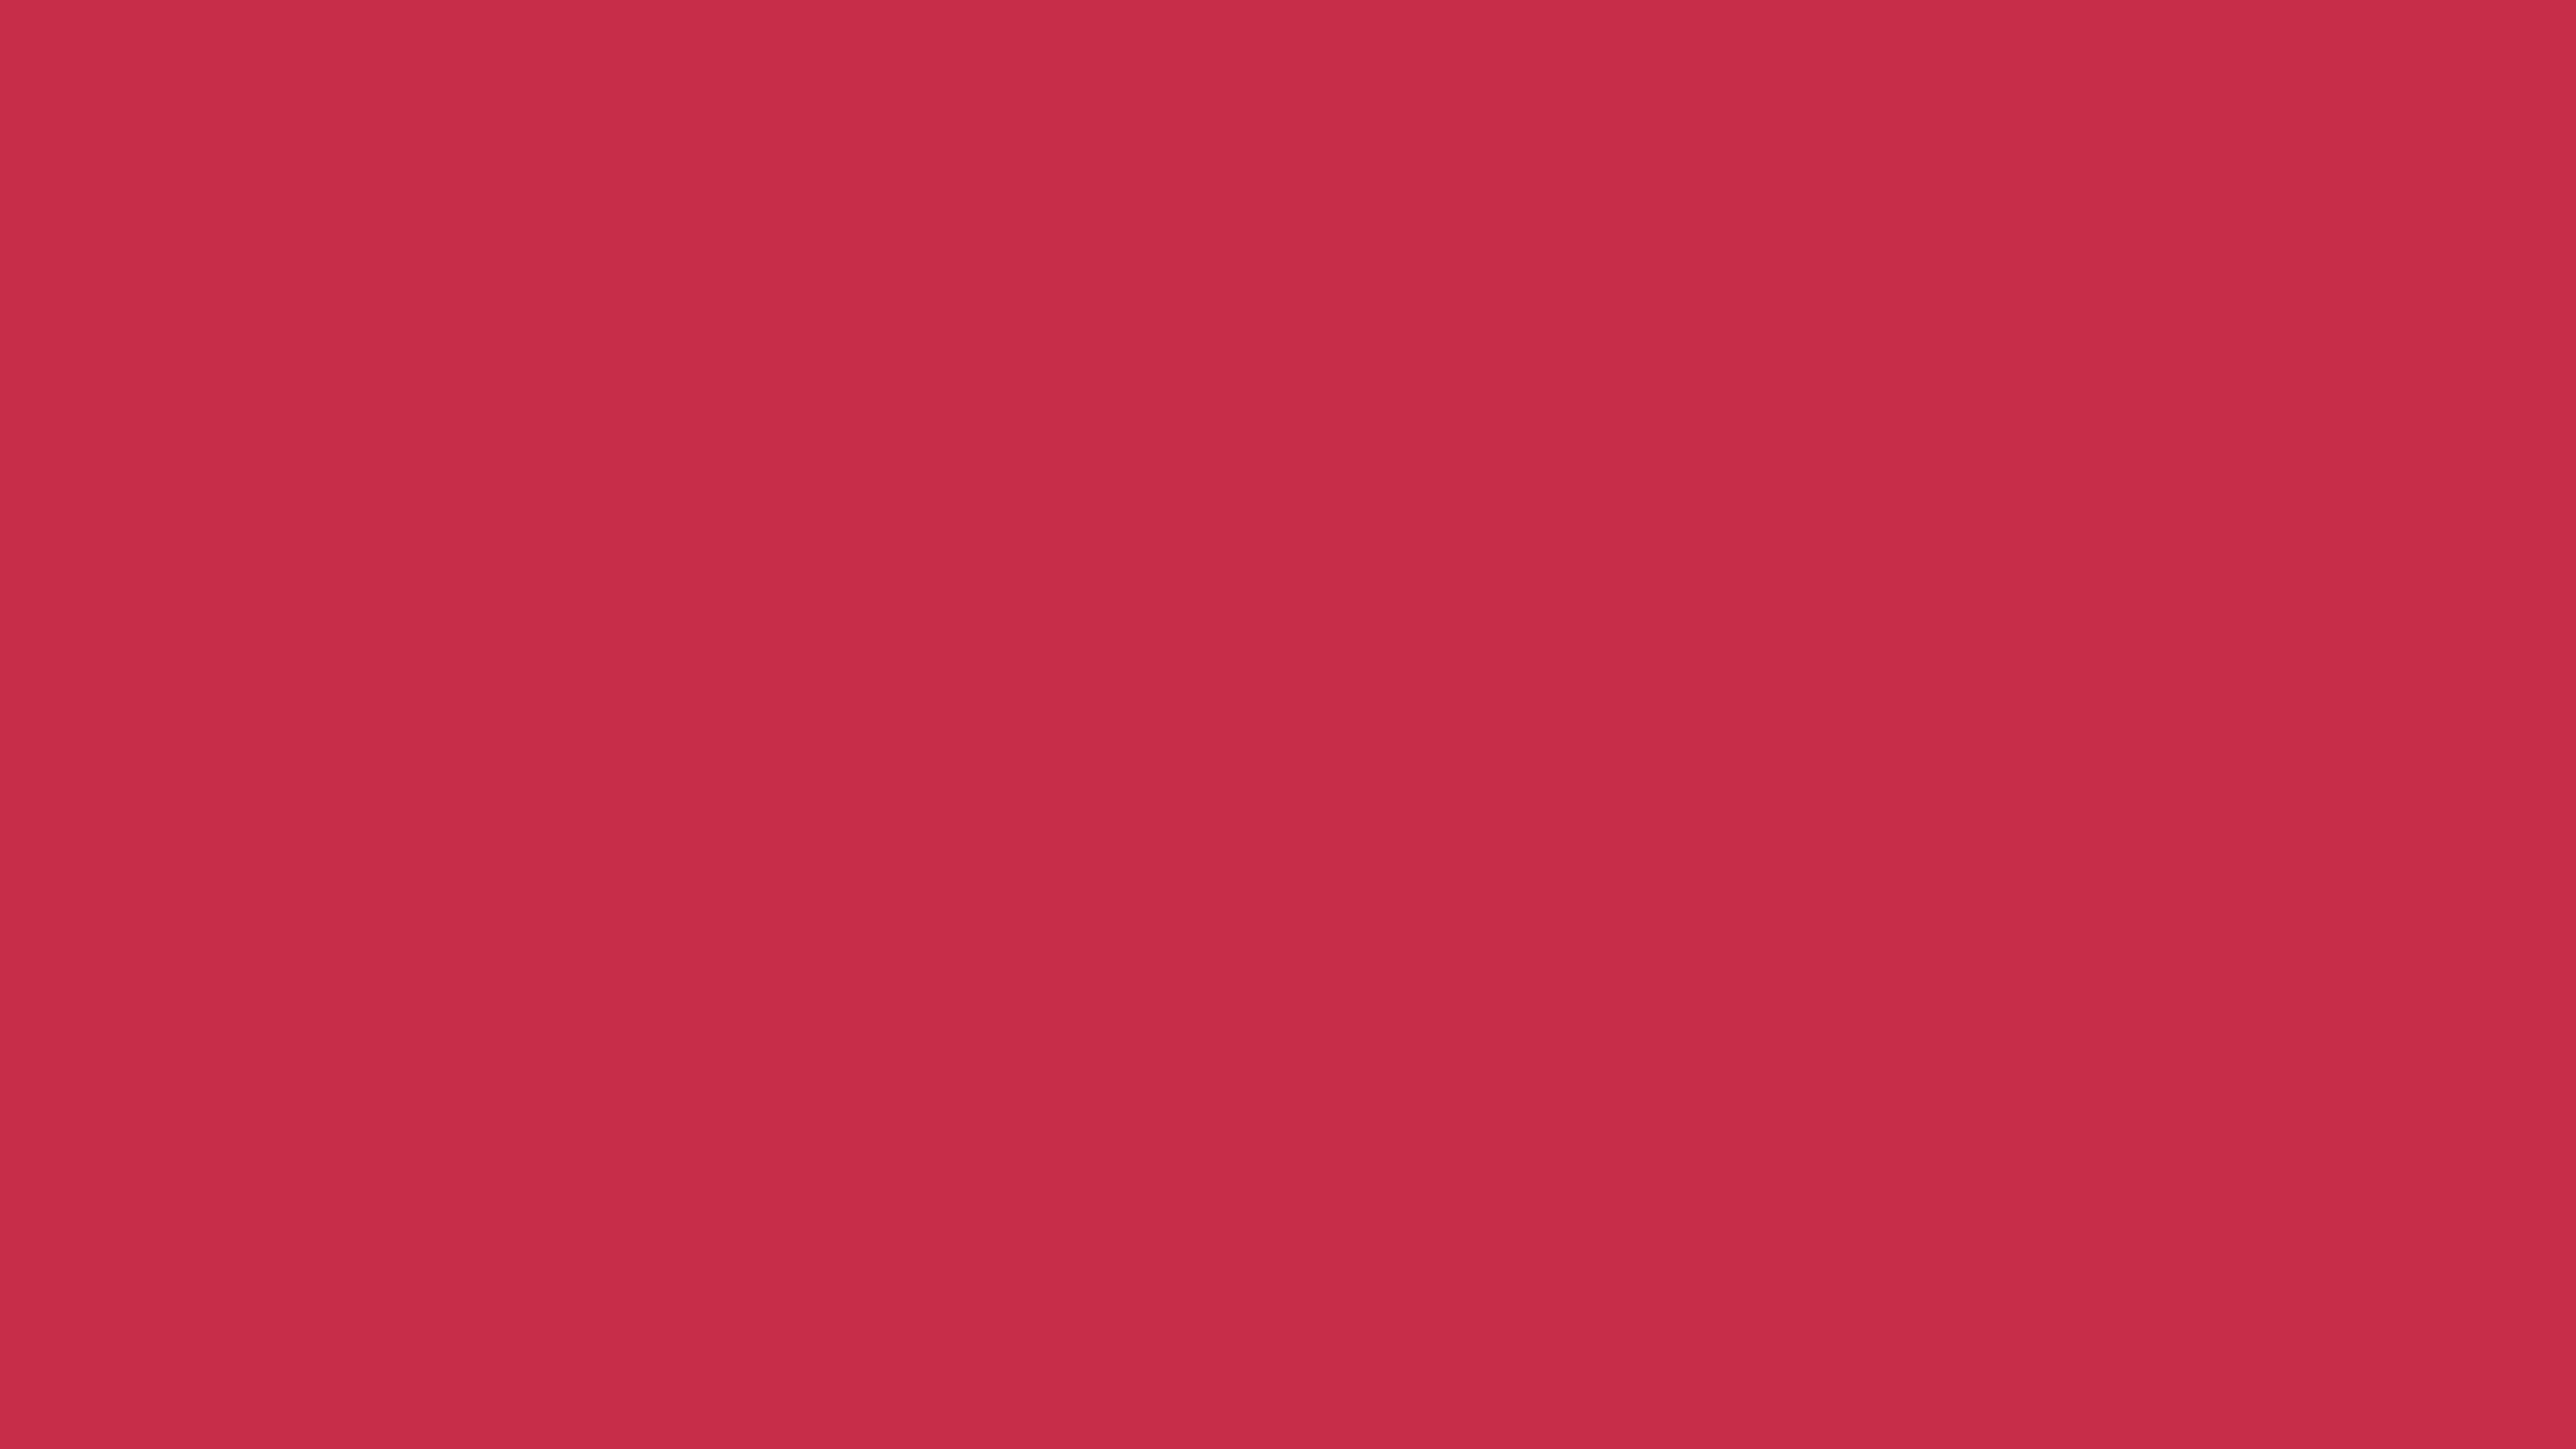 5120x2880 French Raspberry Solid Color Background